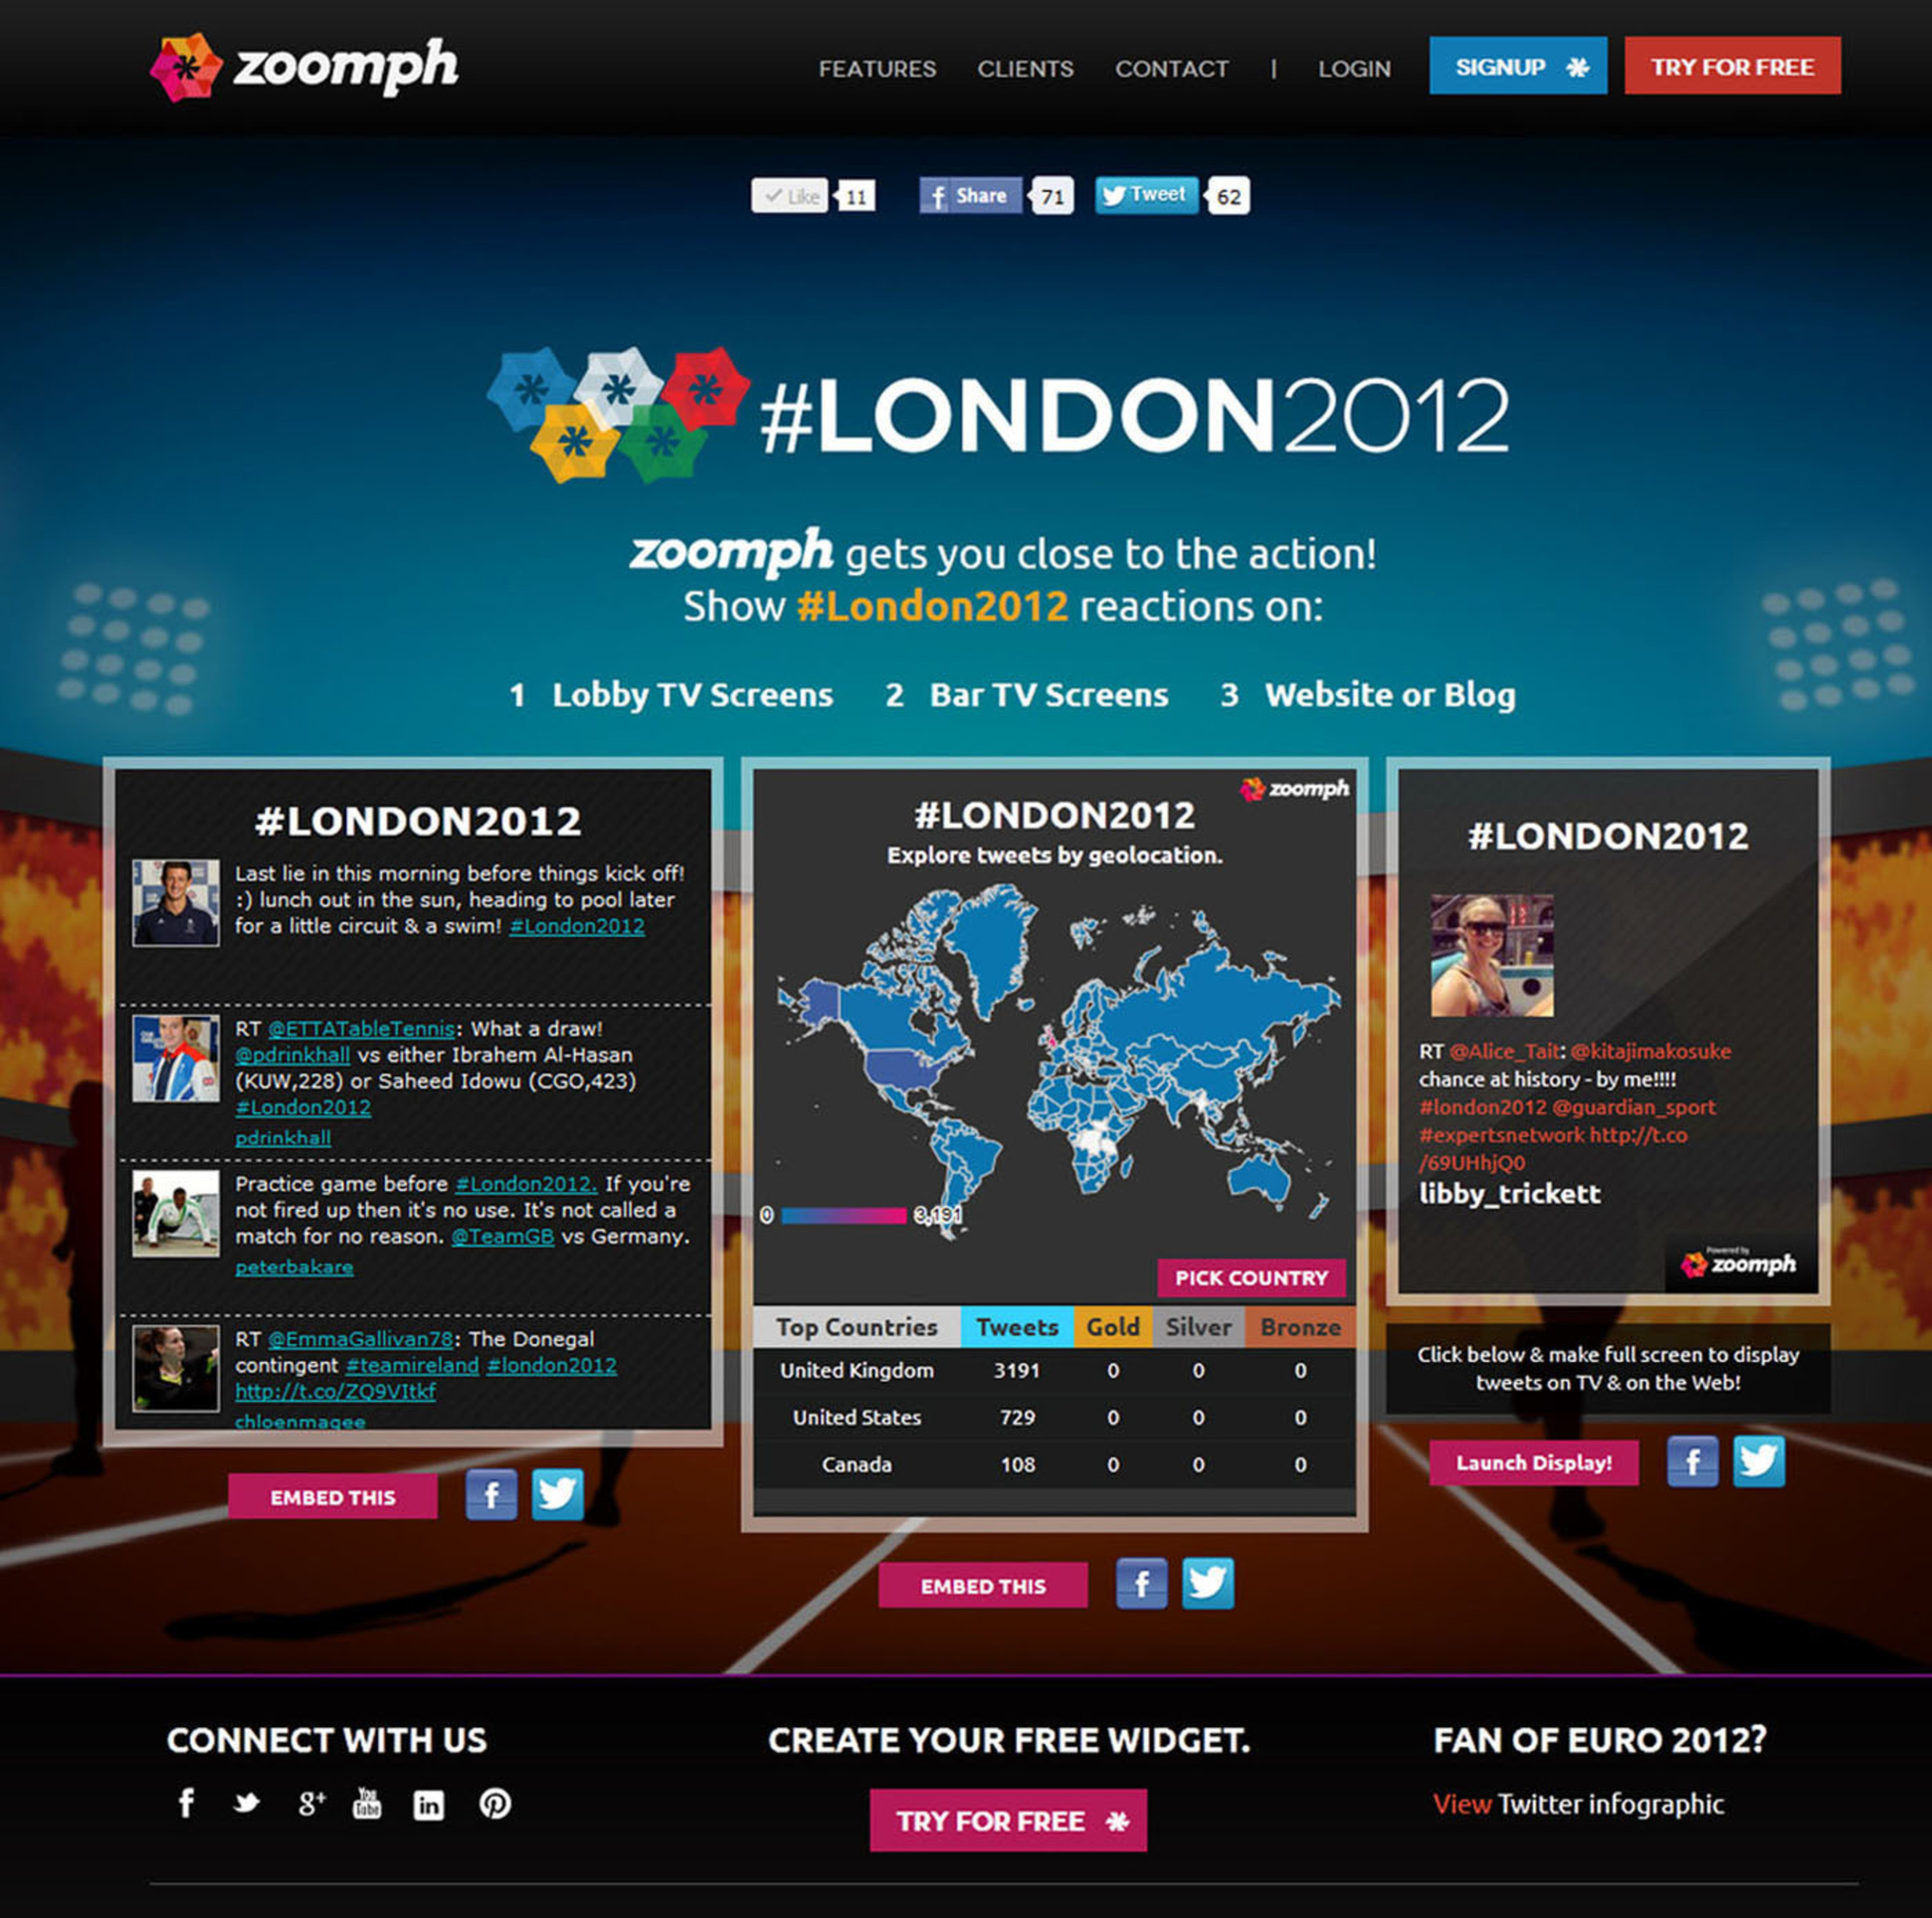 Zoomph Celebrates the 'Socialympics' with User-Centered Widgets